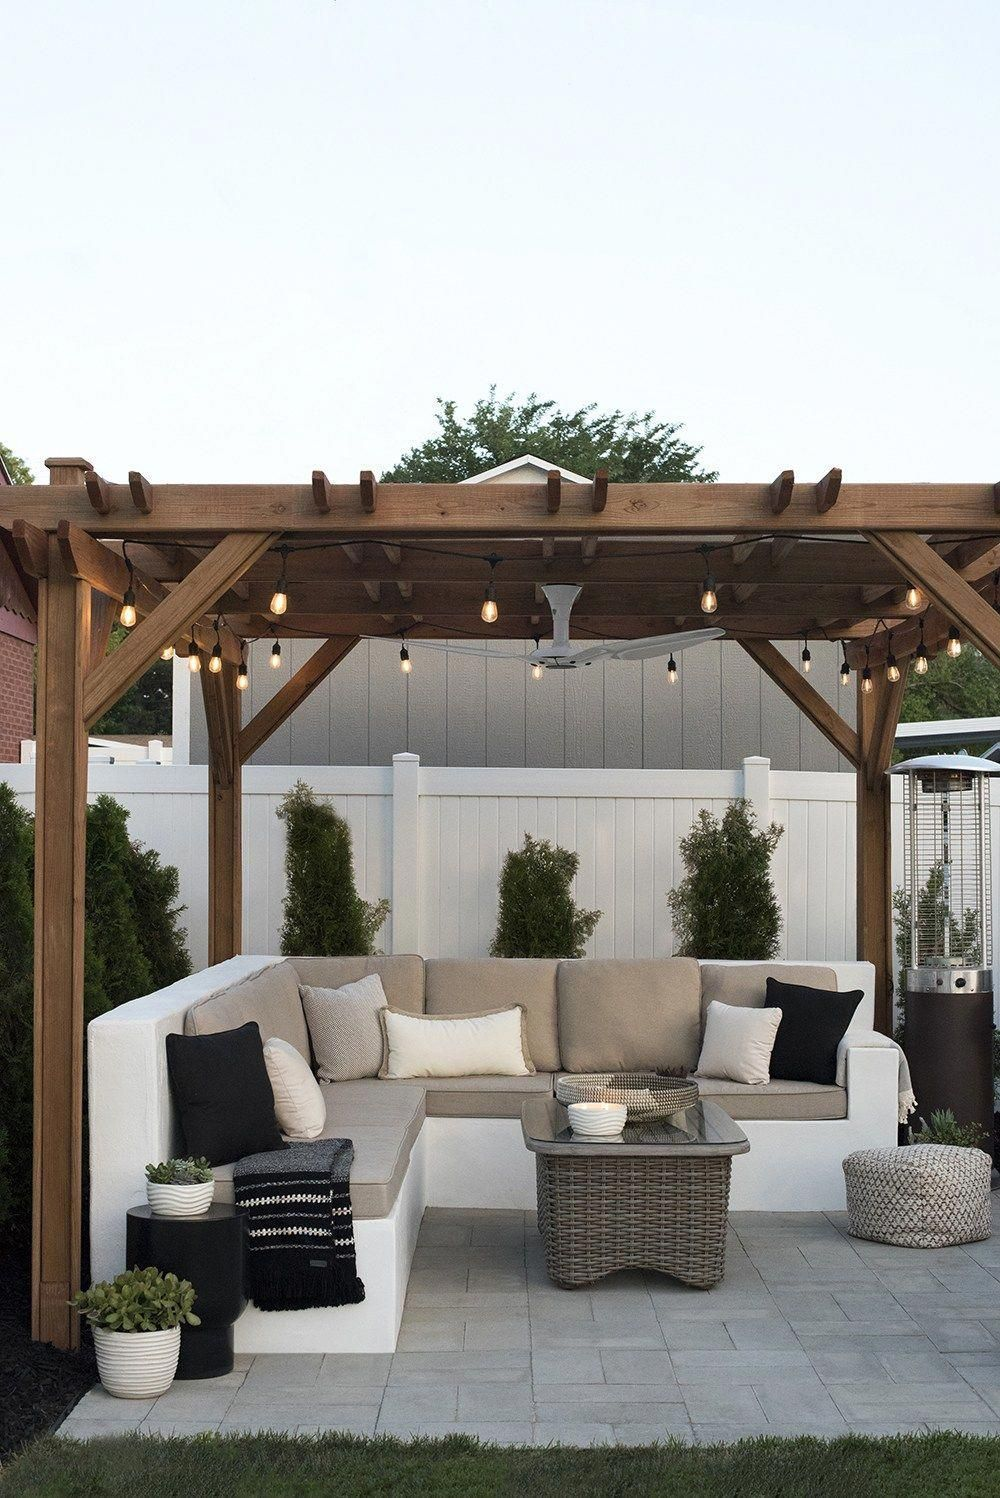 The Backyard One Year Later Room For Tuesday Blog Get Wonderful Ideas On Outdoor Patio I Small Backyard Patio Patio Deck Designs Backyard Patio Designs